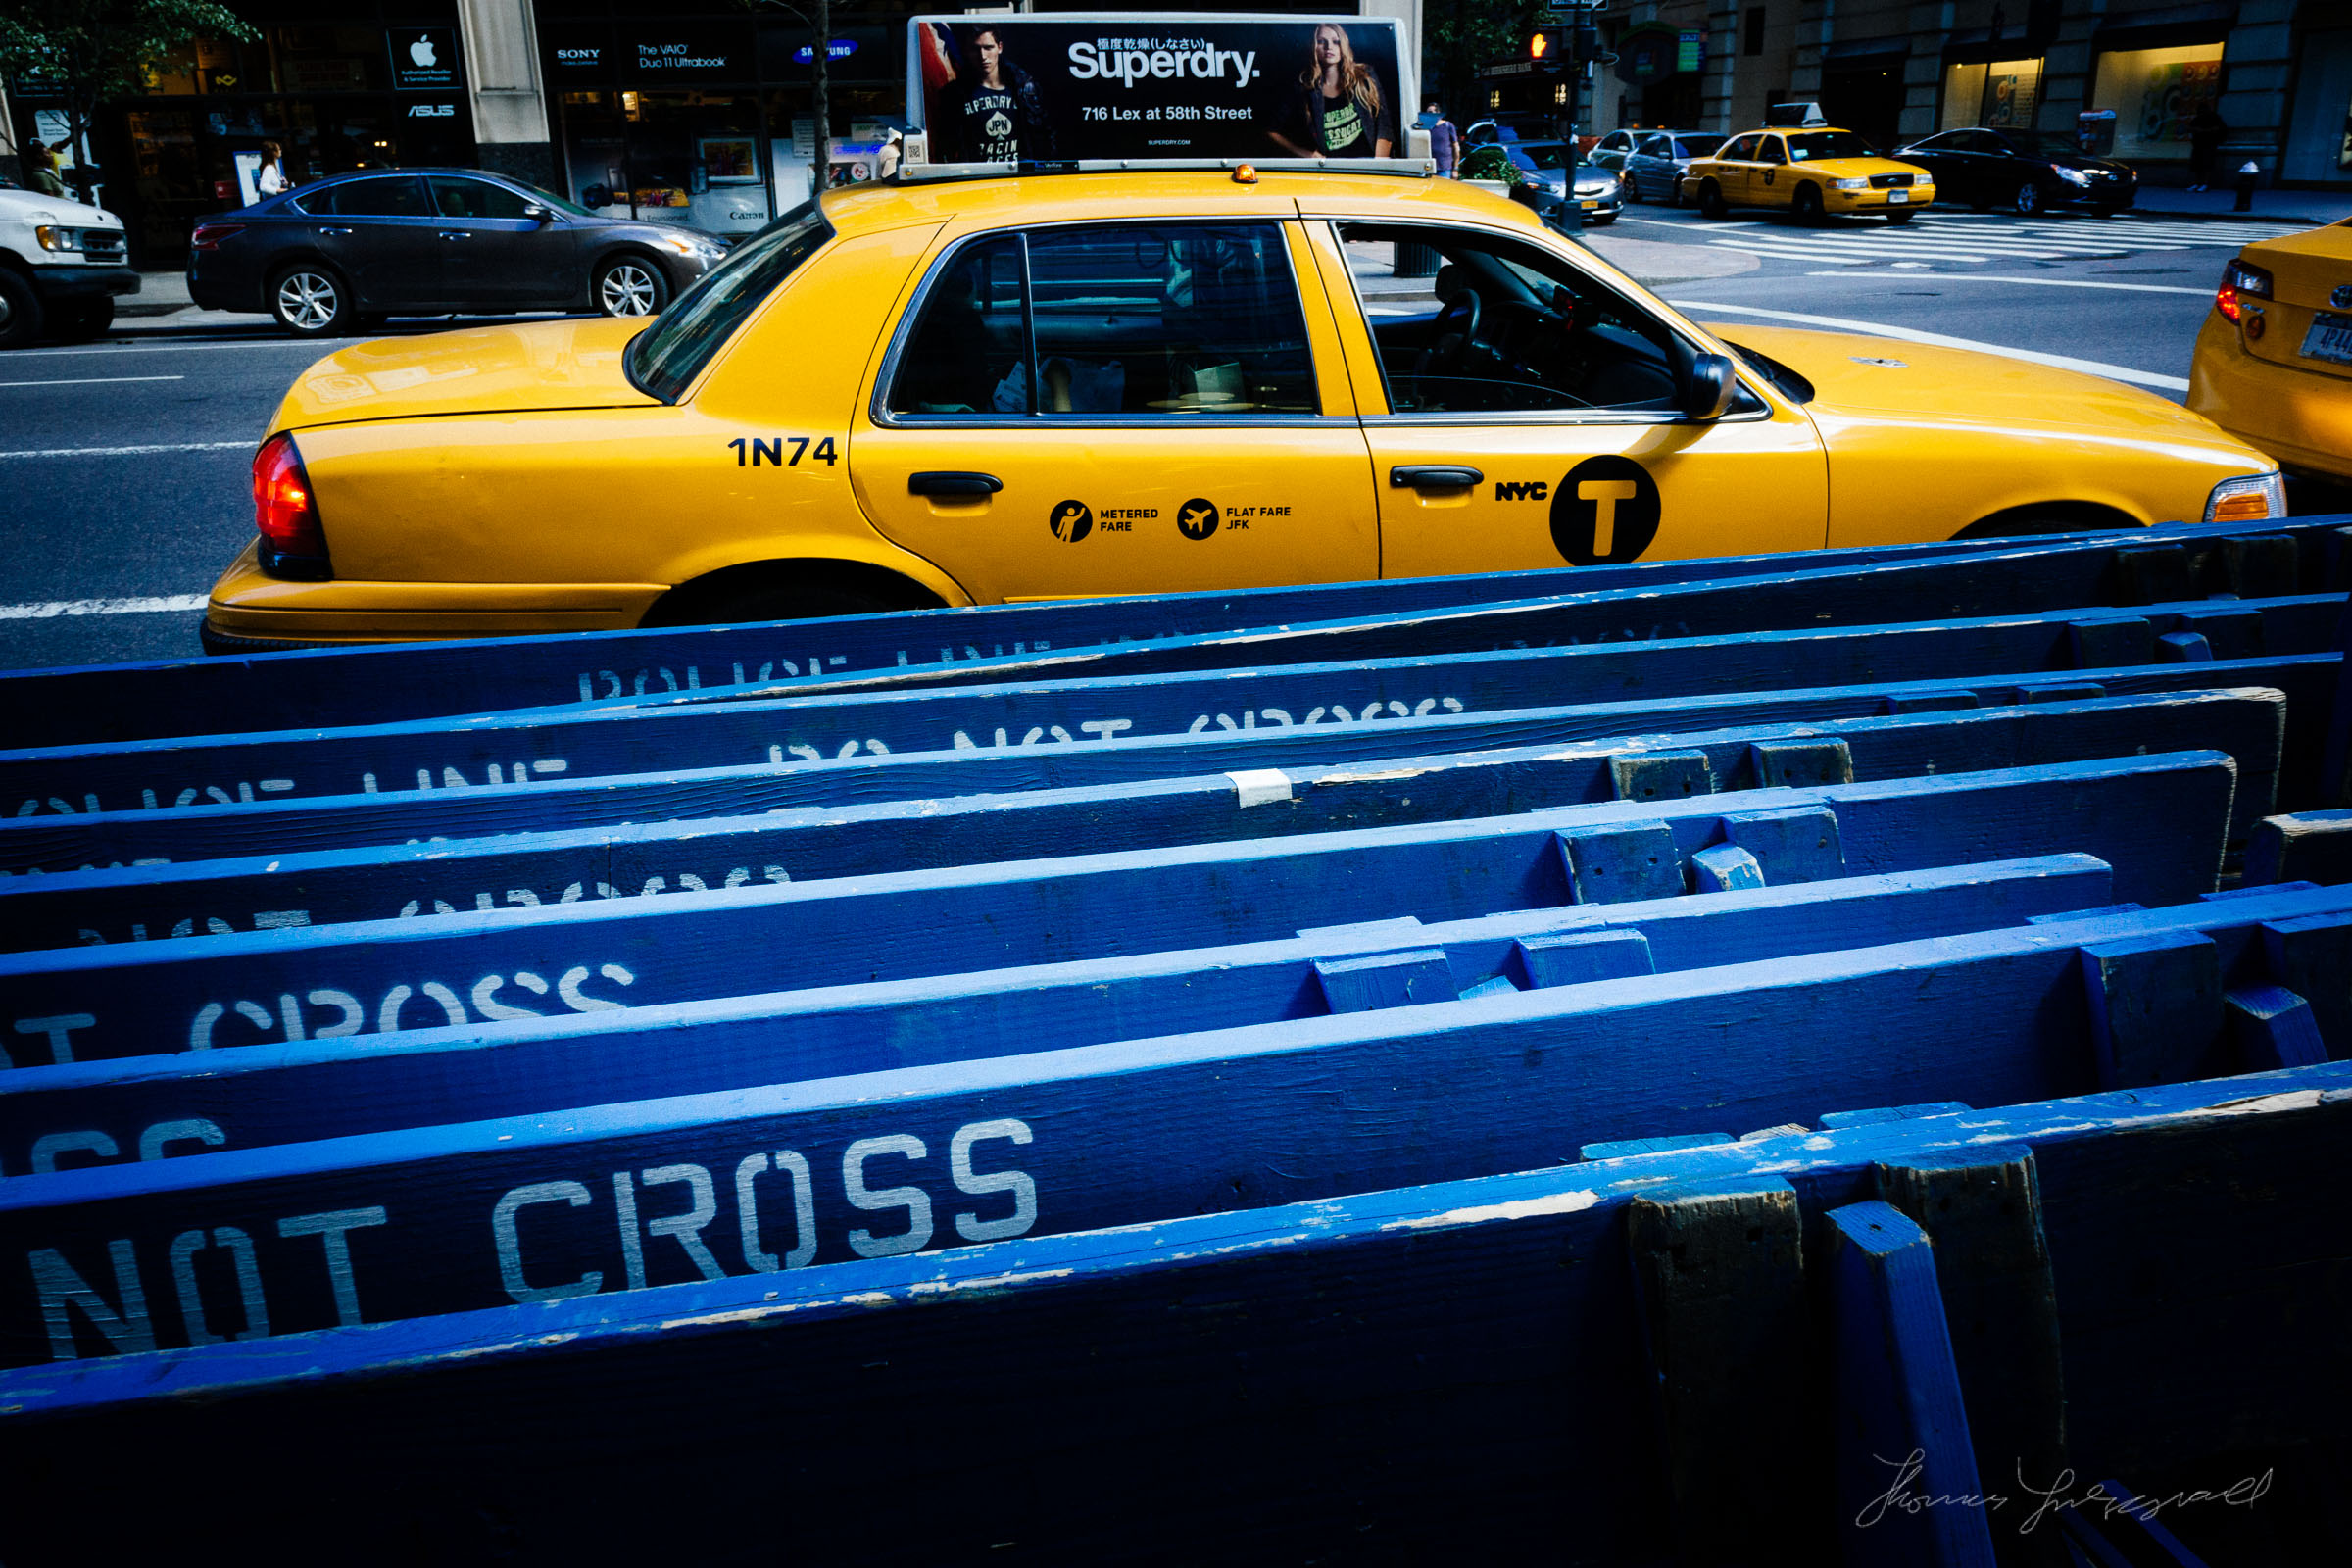 Yellow Cab and Police Barriers